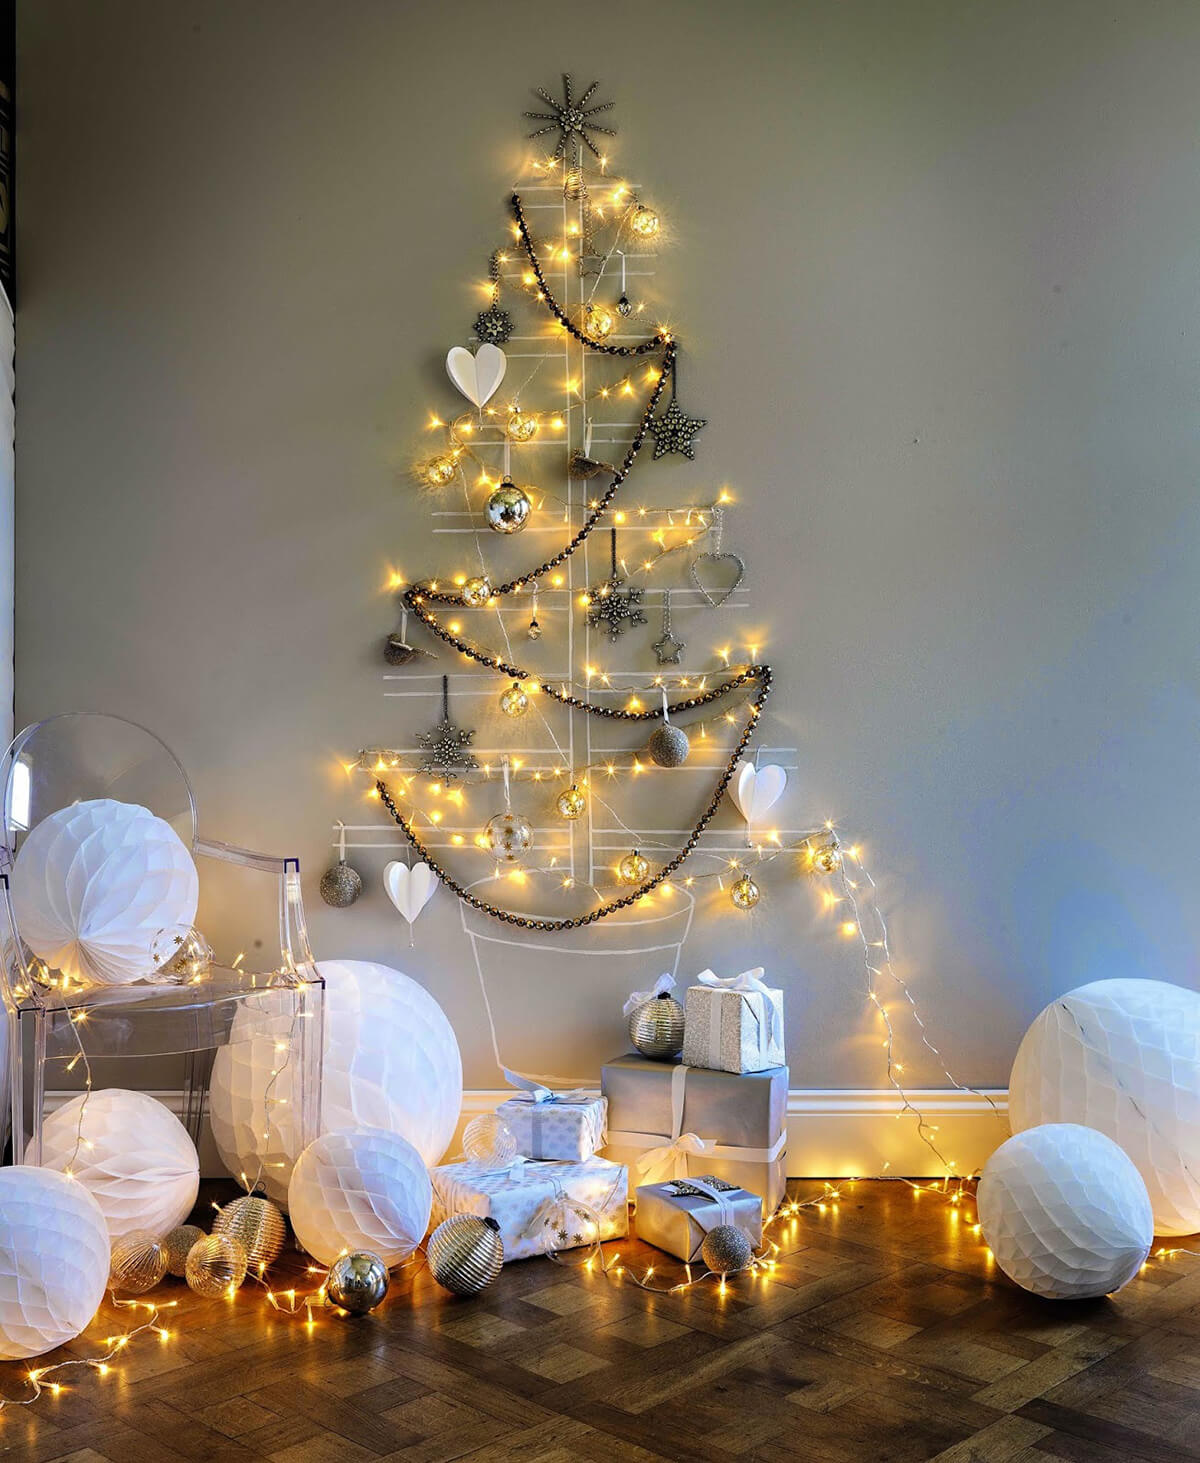 Superbe 35 Best Christmas Wall Decor Ideas And Designs For 2019